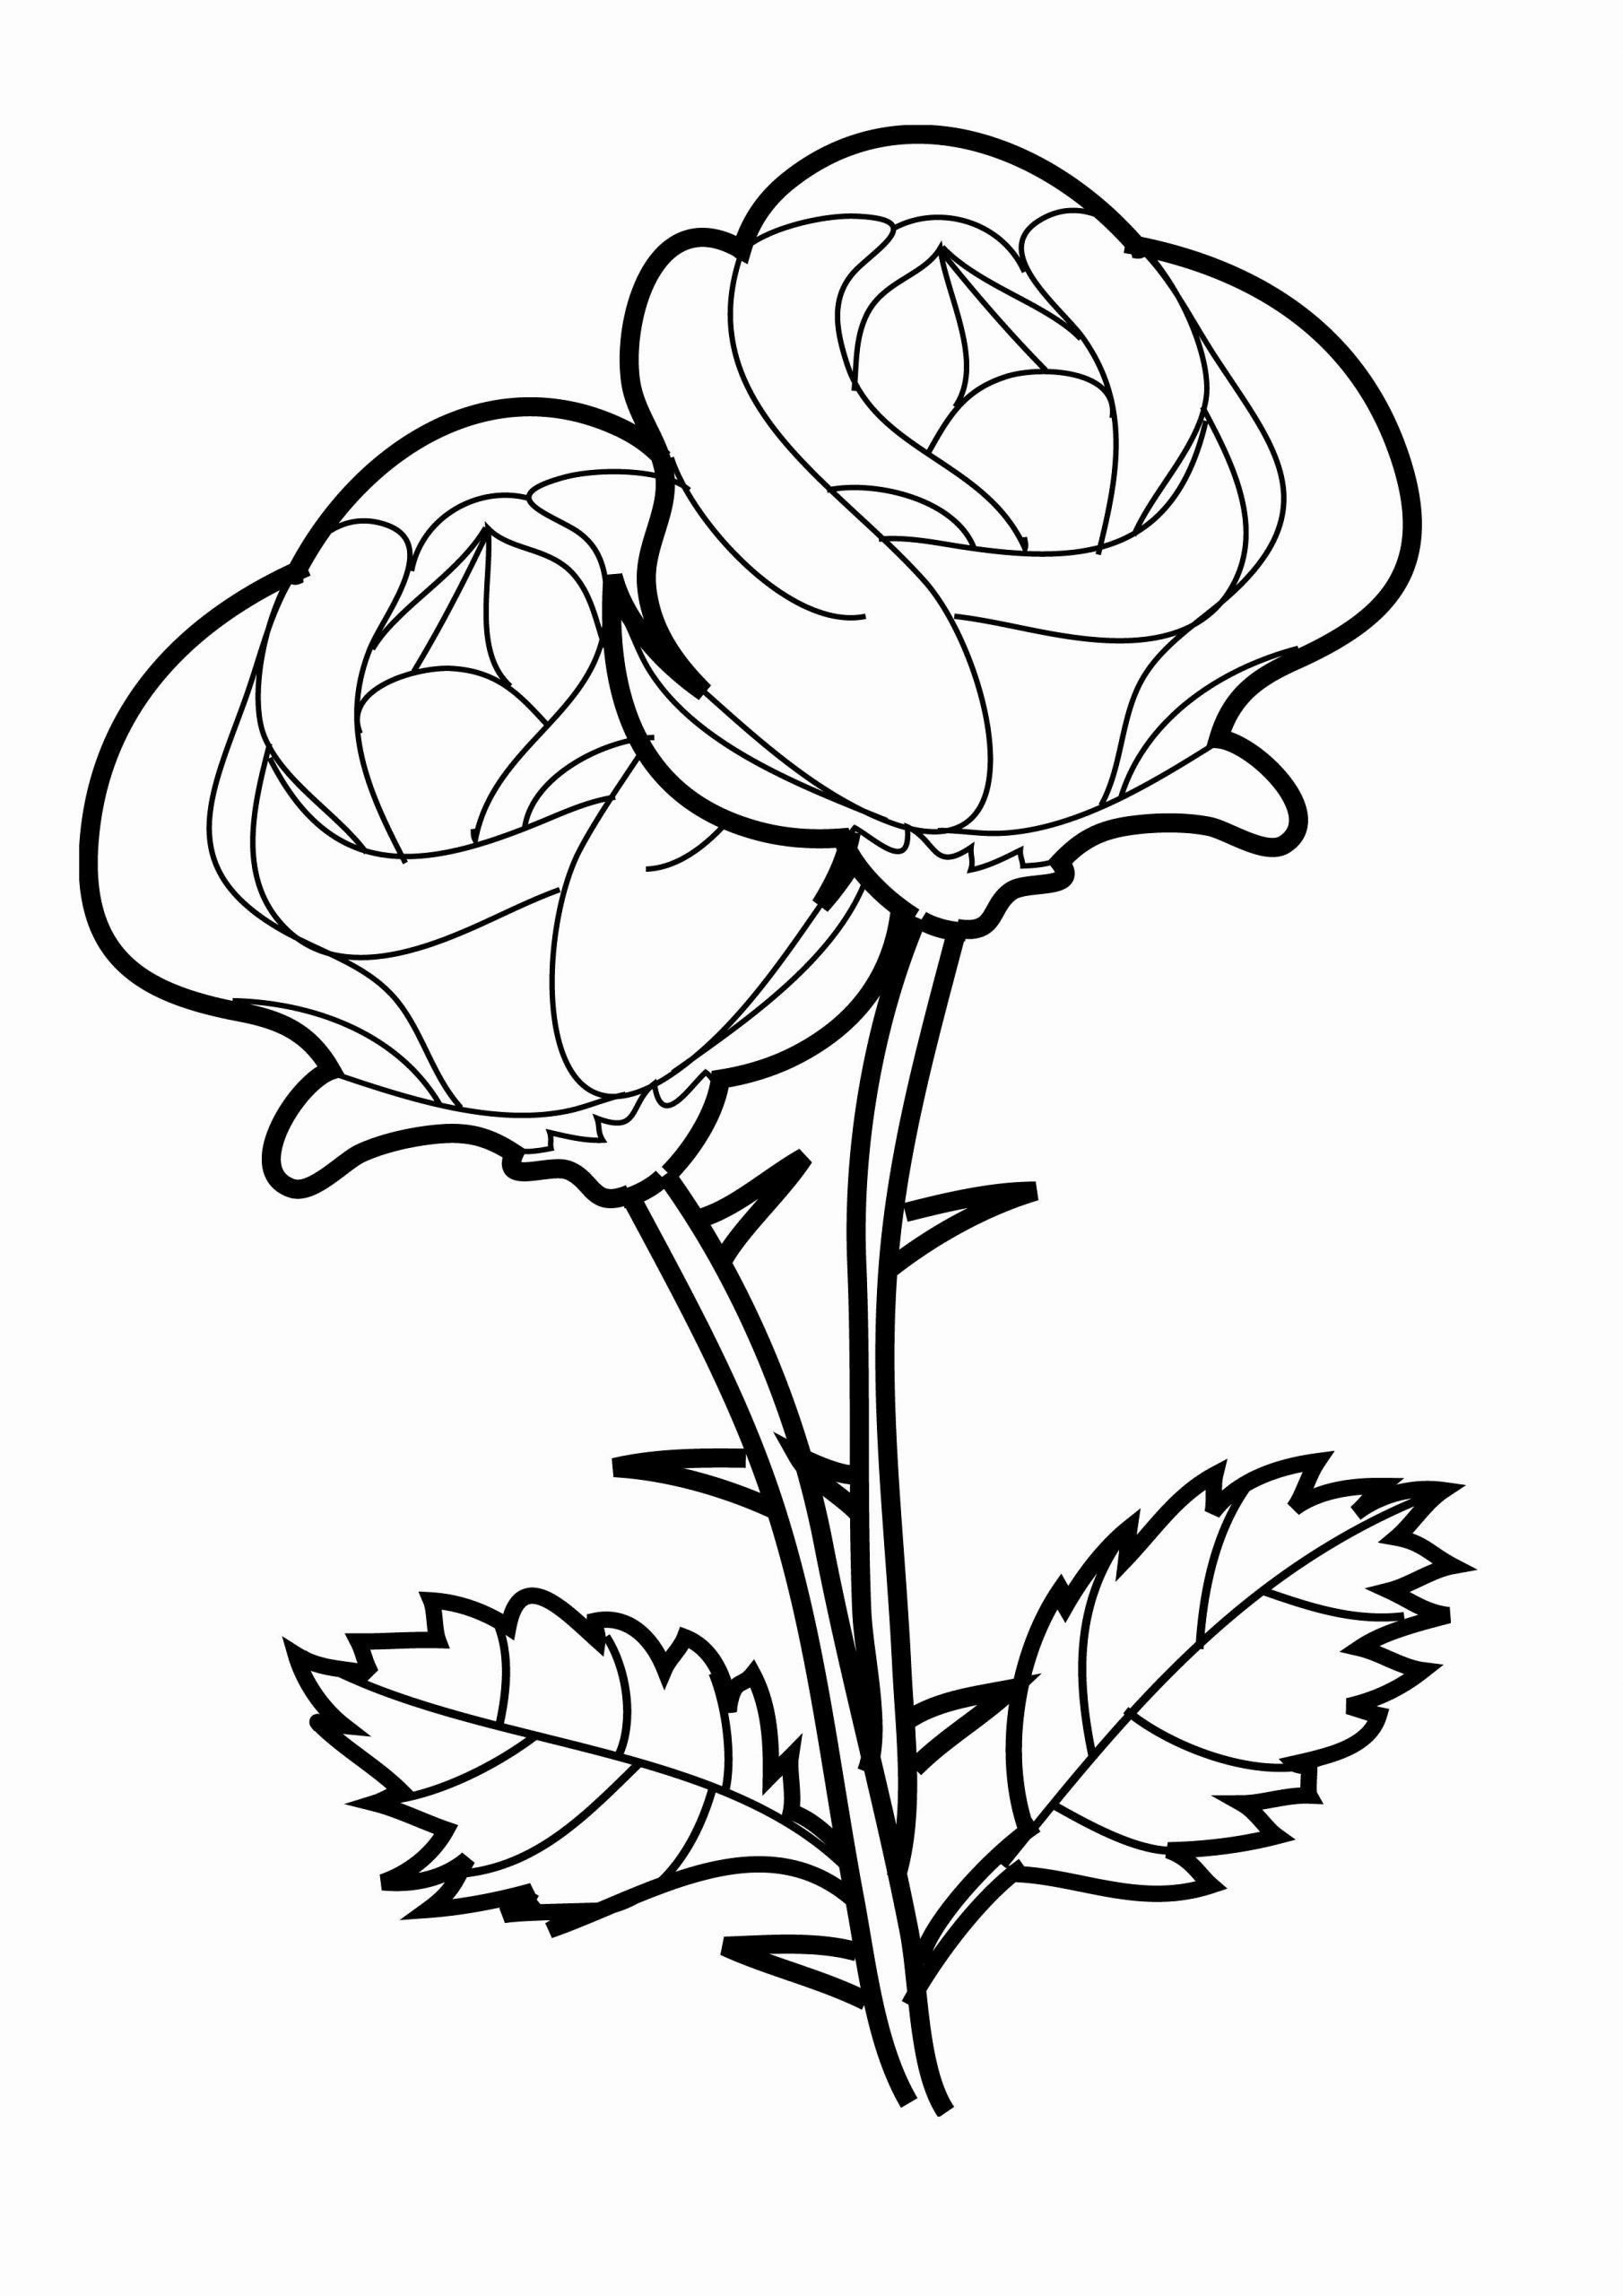 Rose Coloring Books Elegant Free Printable Roses Coloring Pages